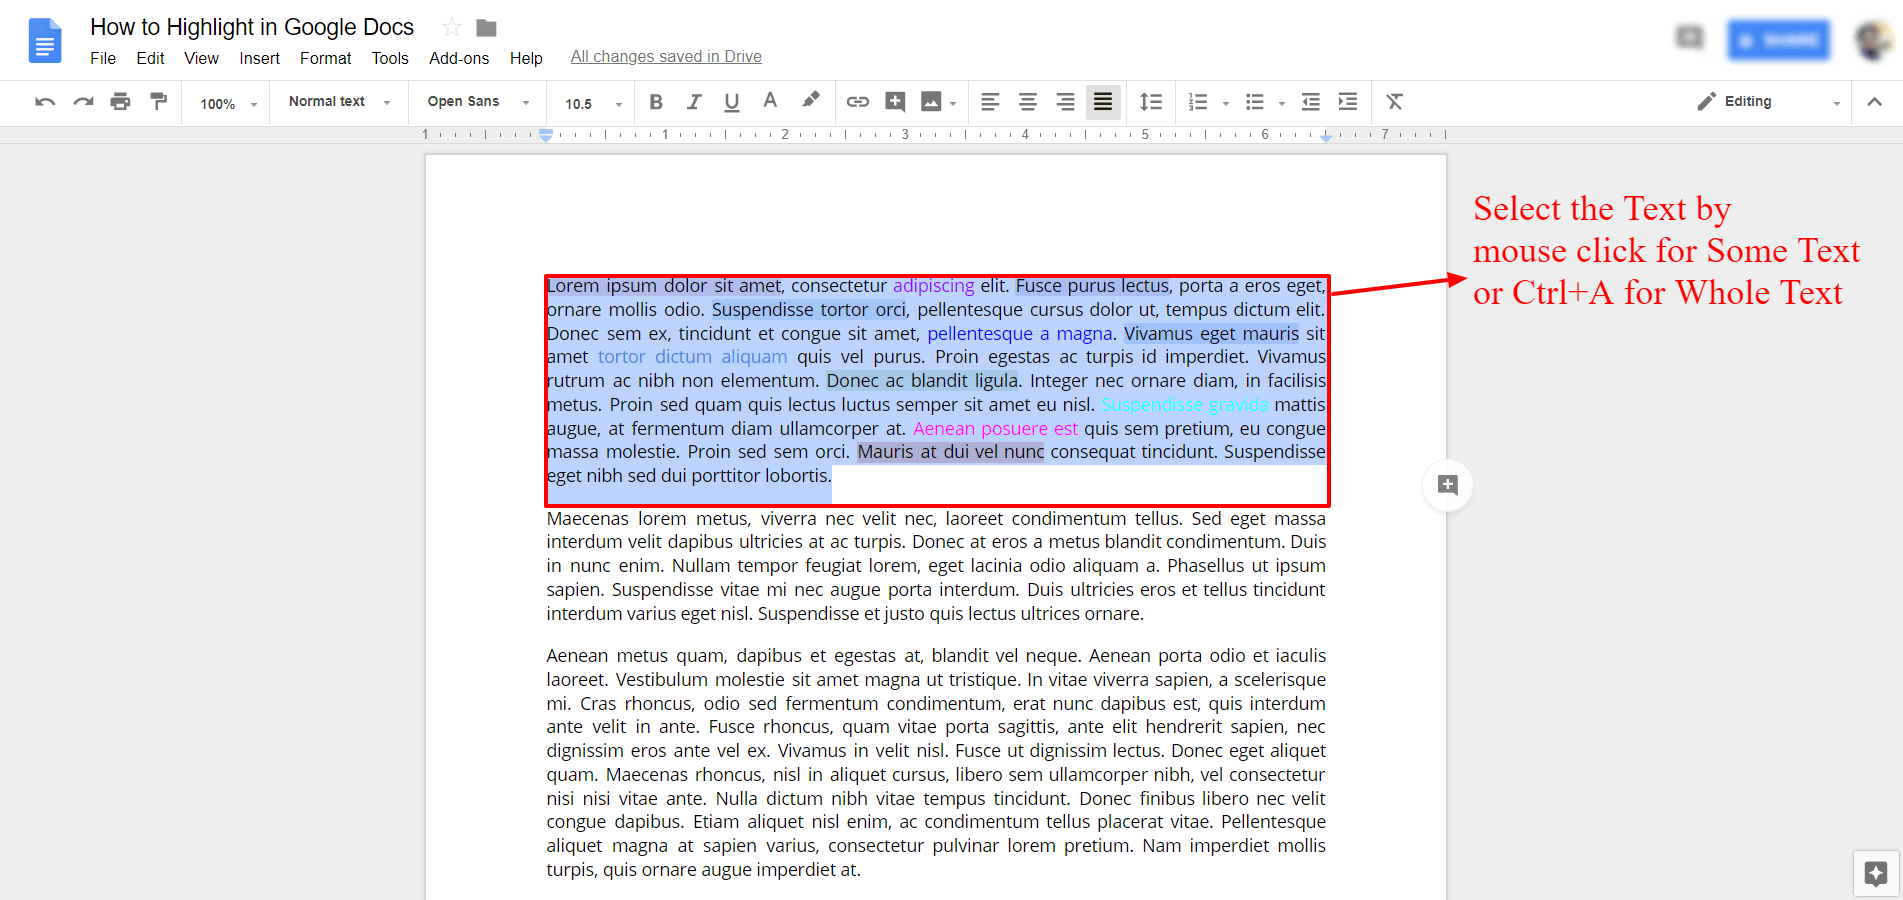 Select Some Text To Remove Highlights - Google Docs